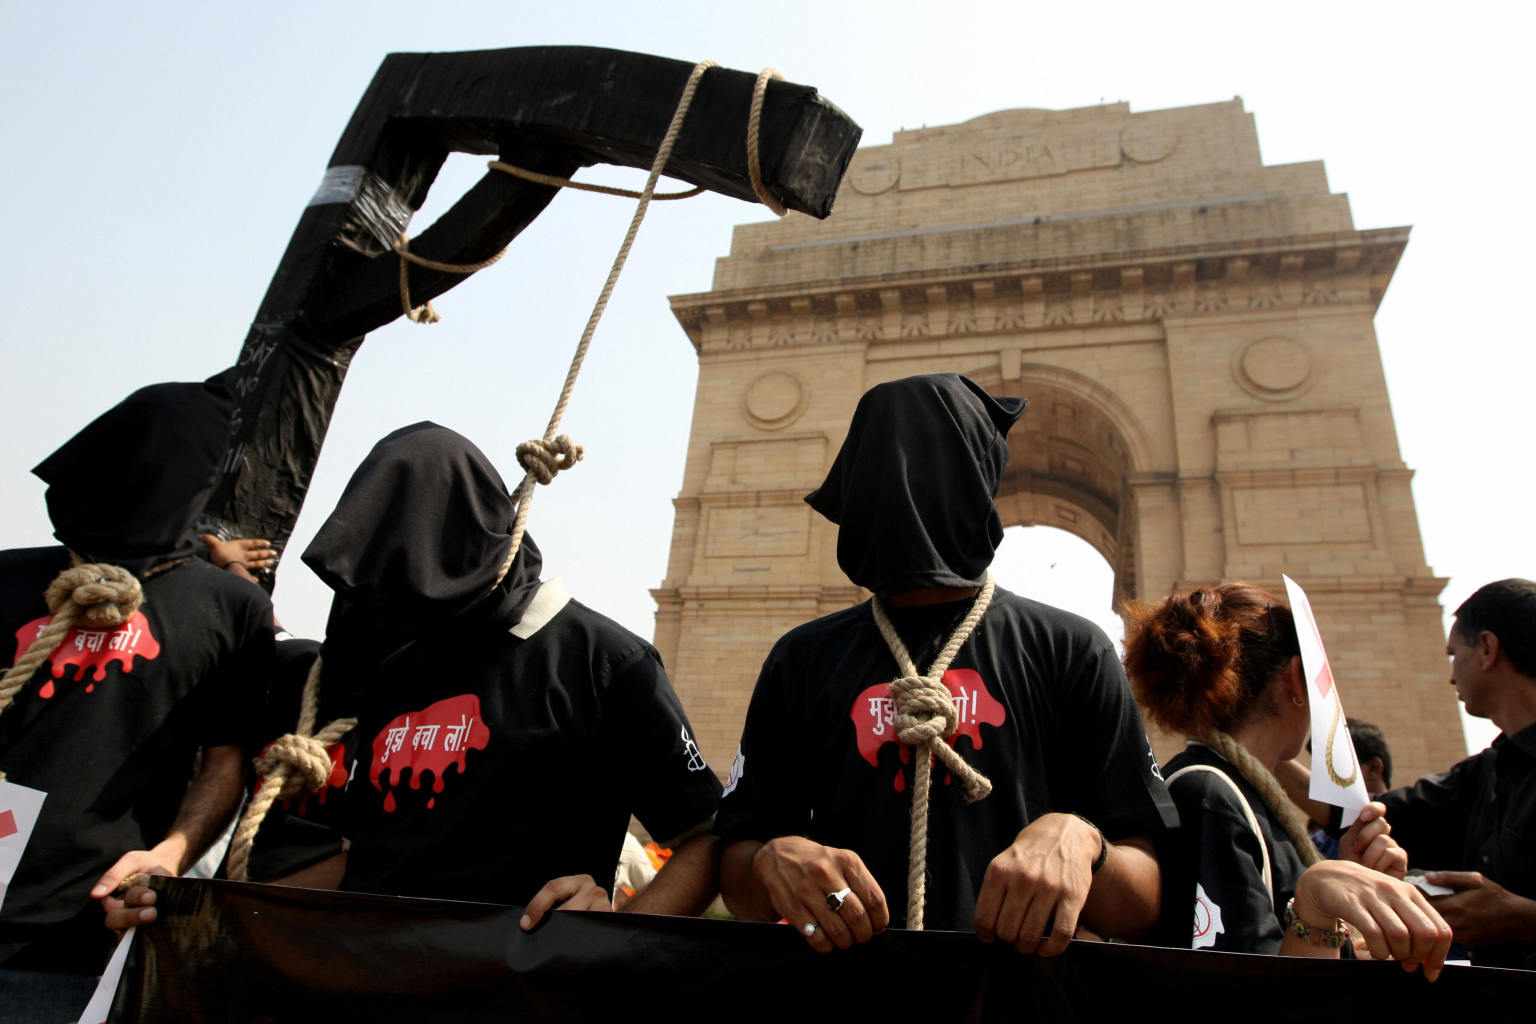 death penalty in india New delhi - offenders who rape girls under 12 may now be subject to the death penalty in india, according to an ordinance passed by india's cabinet.